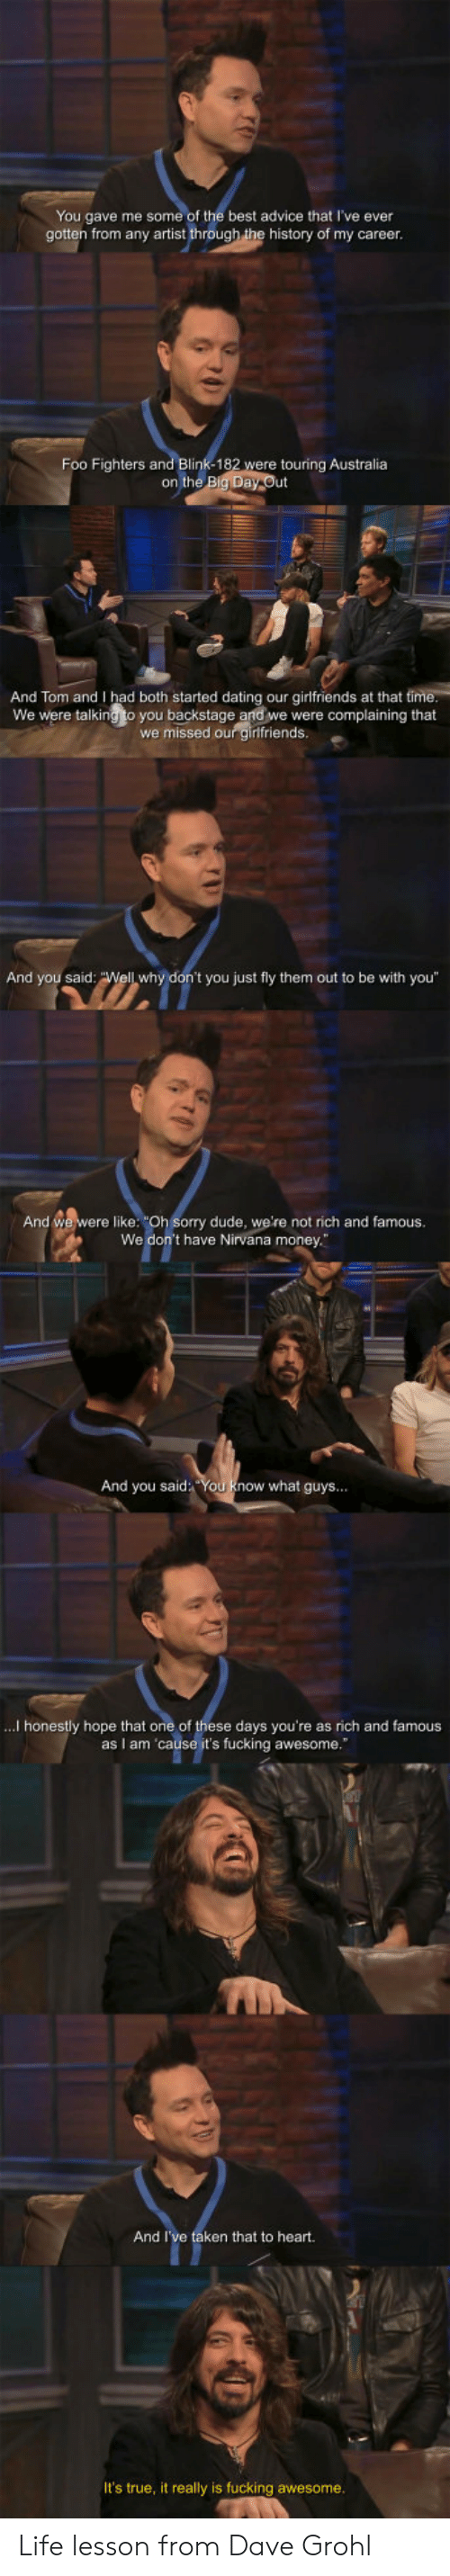 """Foo Fighters: You gave me some of the best advice that I've ever  gotten from any artist through the history of my career  Foo Fighters and Blink-182  were touring Australia  on the  And Tom and I had both started dating our girlfriends at that ti  We were talking to you backstage and we were complaining that  we missed our girlfriends  And you said  t you just fly them out to be with you""""  And we were like: """"Oh Sorry dude, we're not rich and famous.  We don't have Nirvana money  And you said You know what guys...  ...I honestly hope that one of these days you're as rich and famous  as I am 'cause it's fucking awesome.""""  And I  ken that to heart.  It's true, it really is fucking awesome Life lesson from Dave Grohl"""